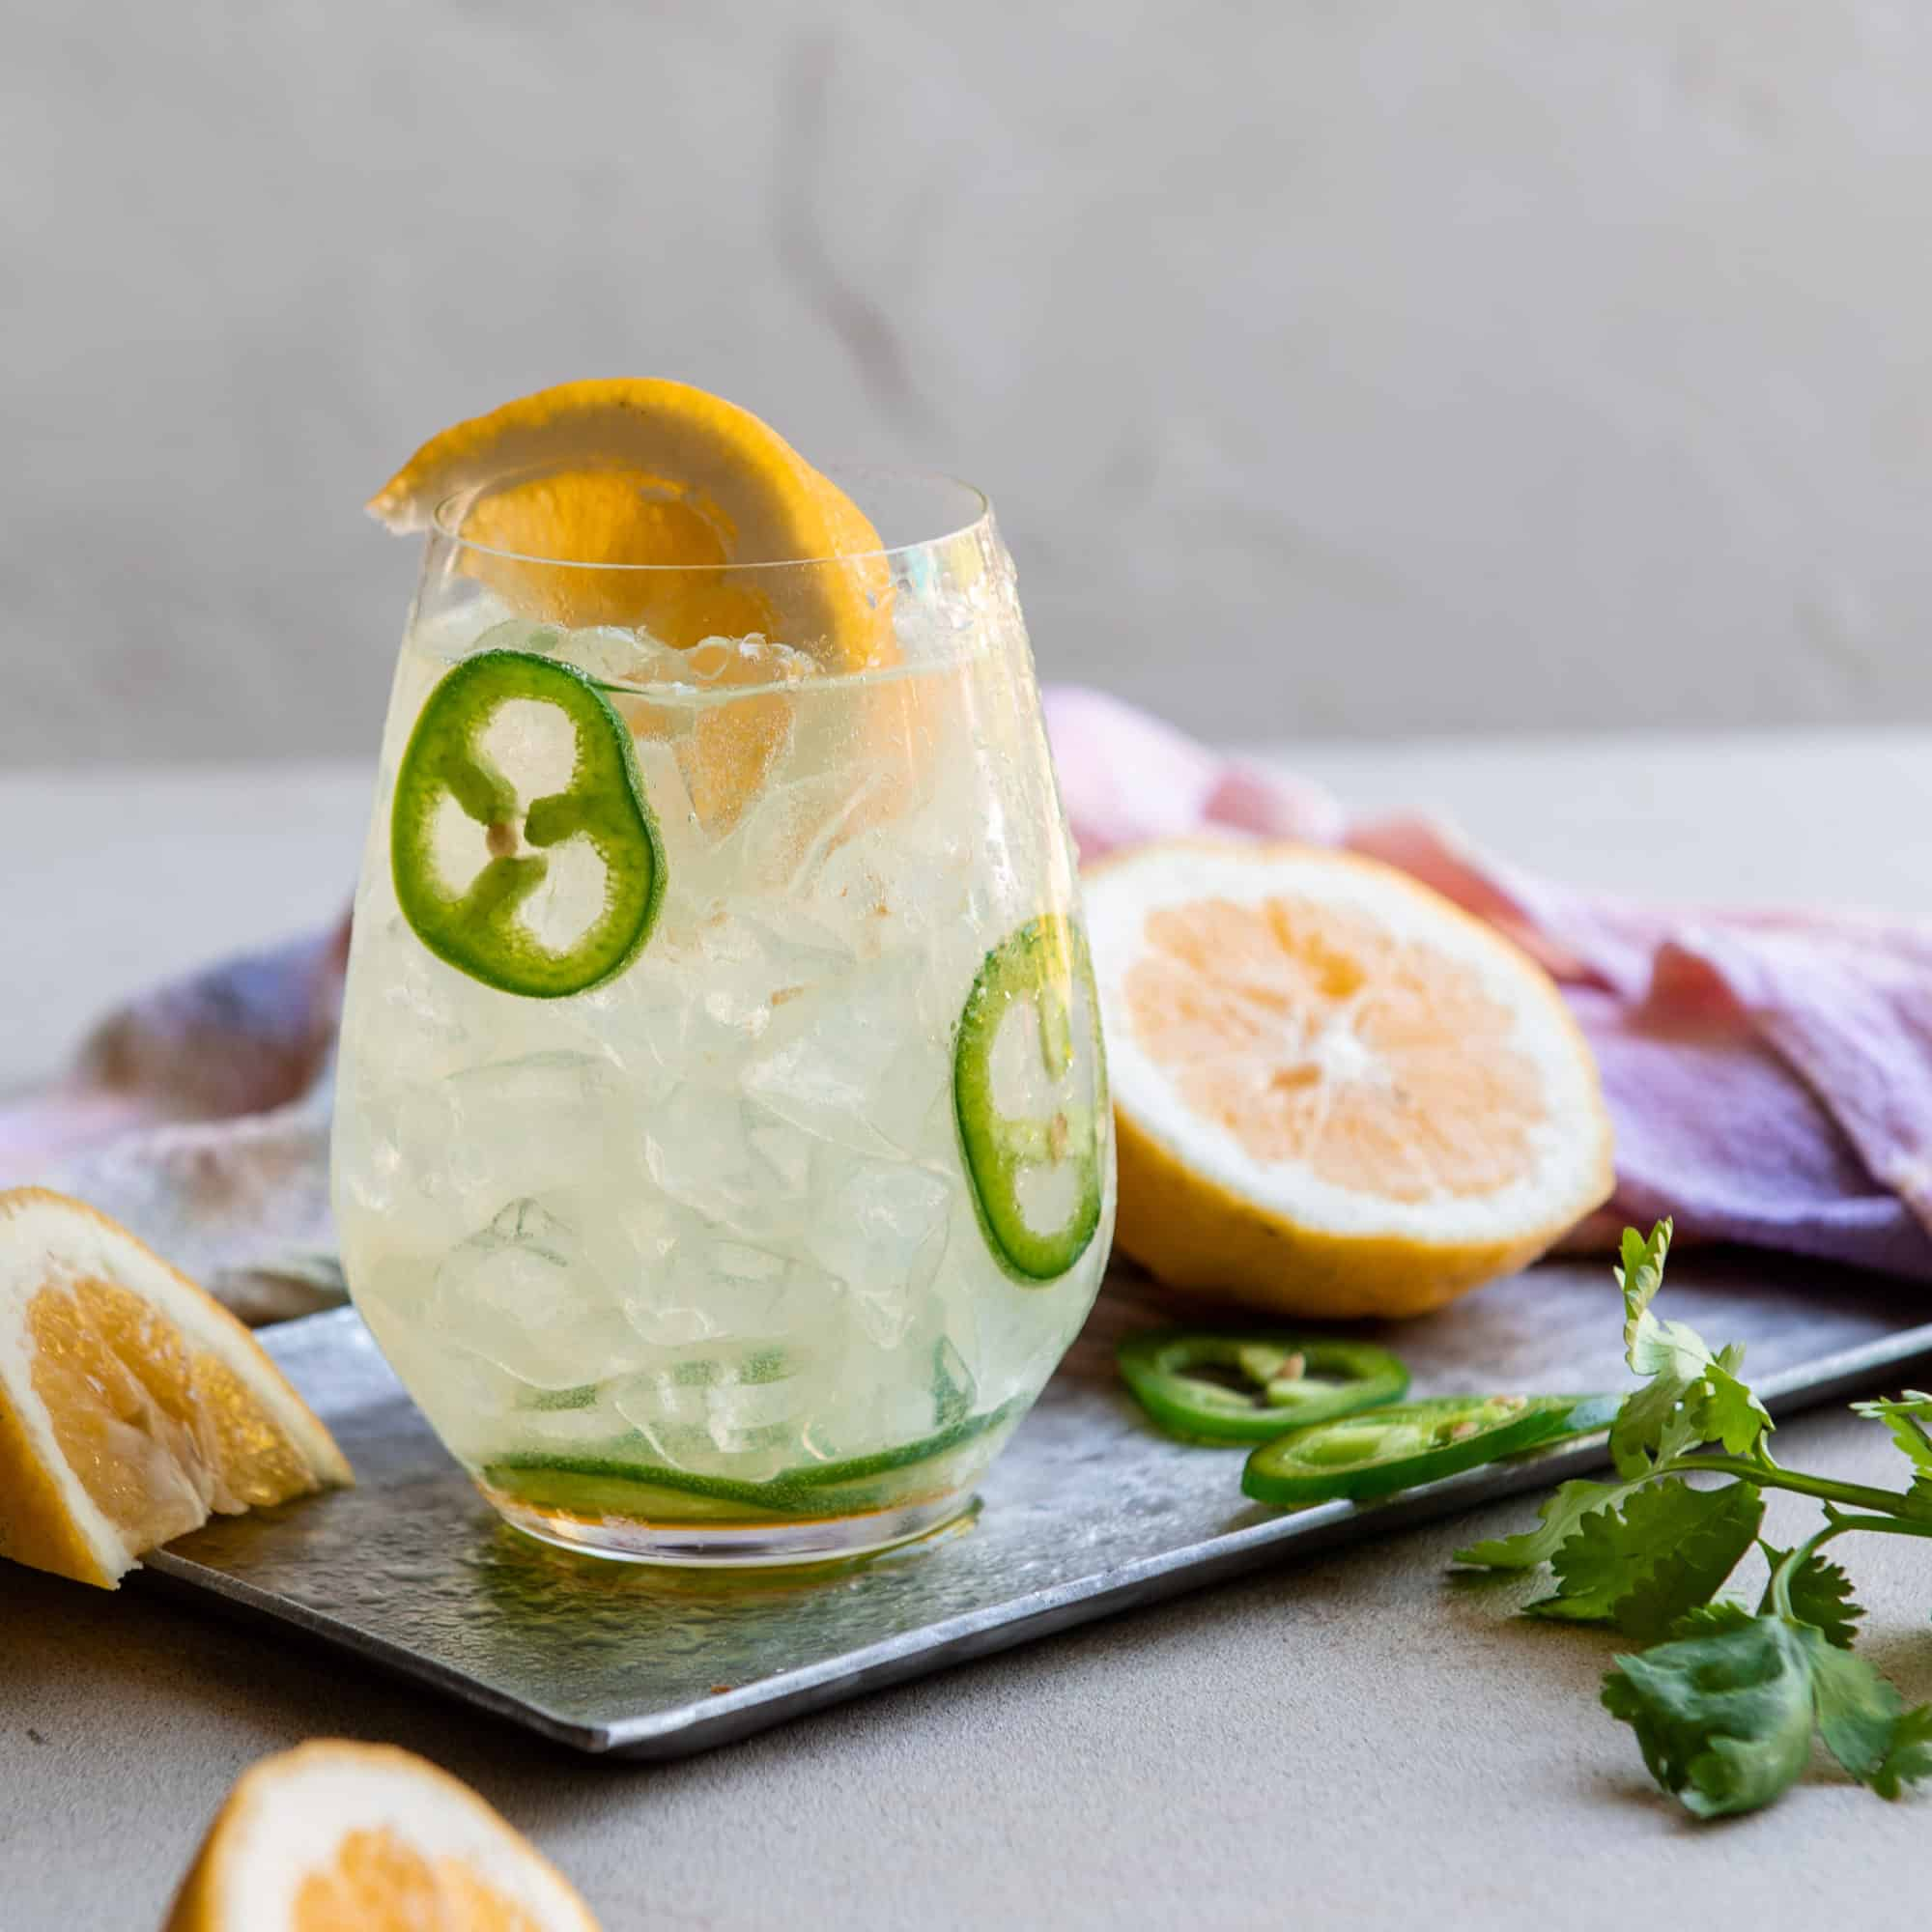 Coconut water and lemonade cocktail with sliced jalapenos and lemon wedges